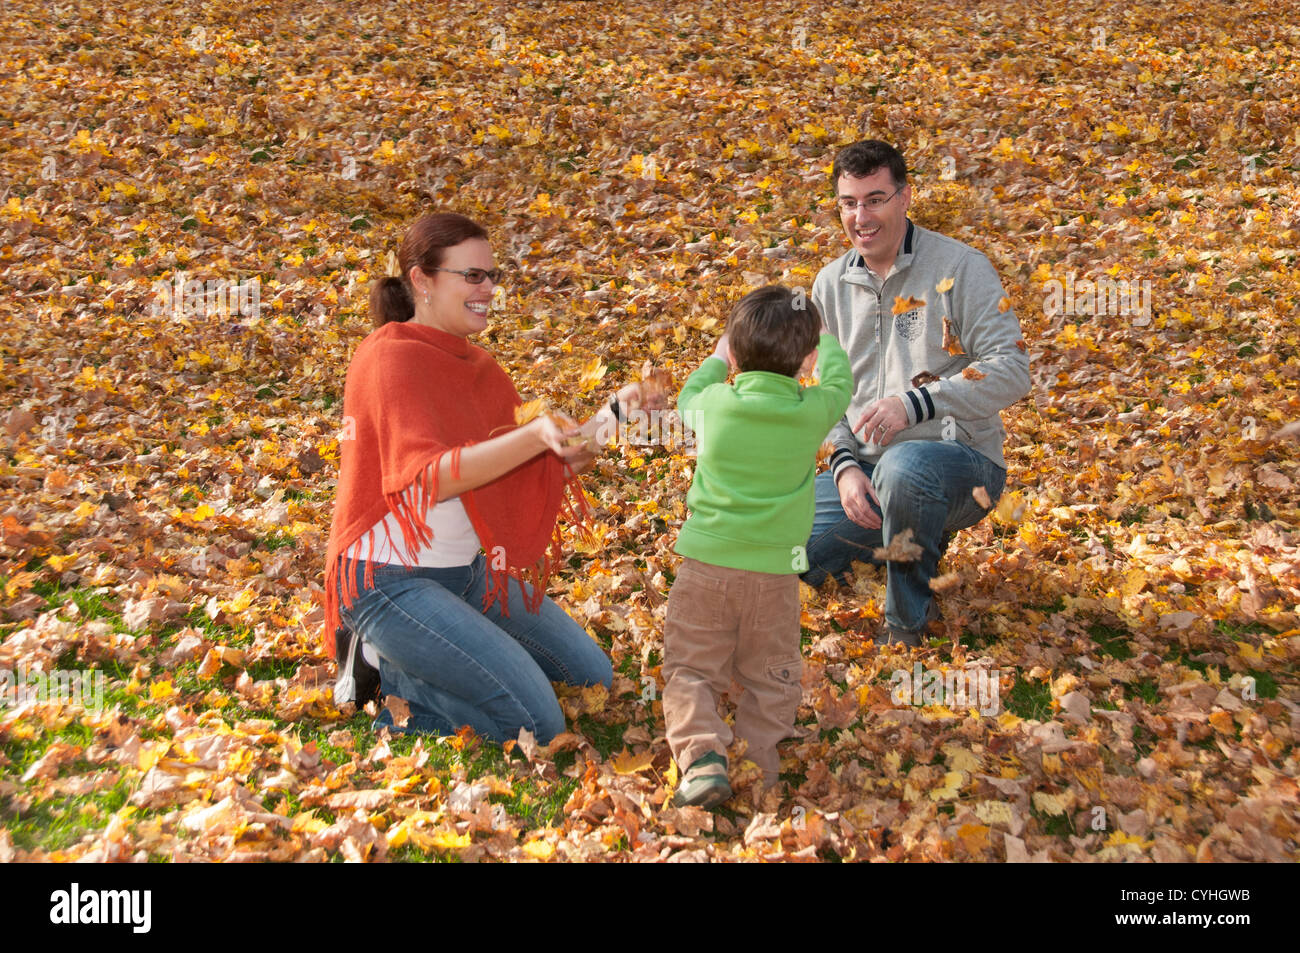 Parents and child playing autumn - Stock Image